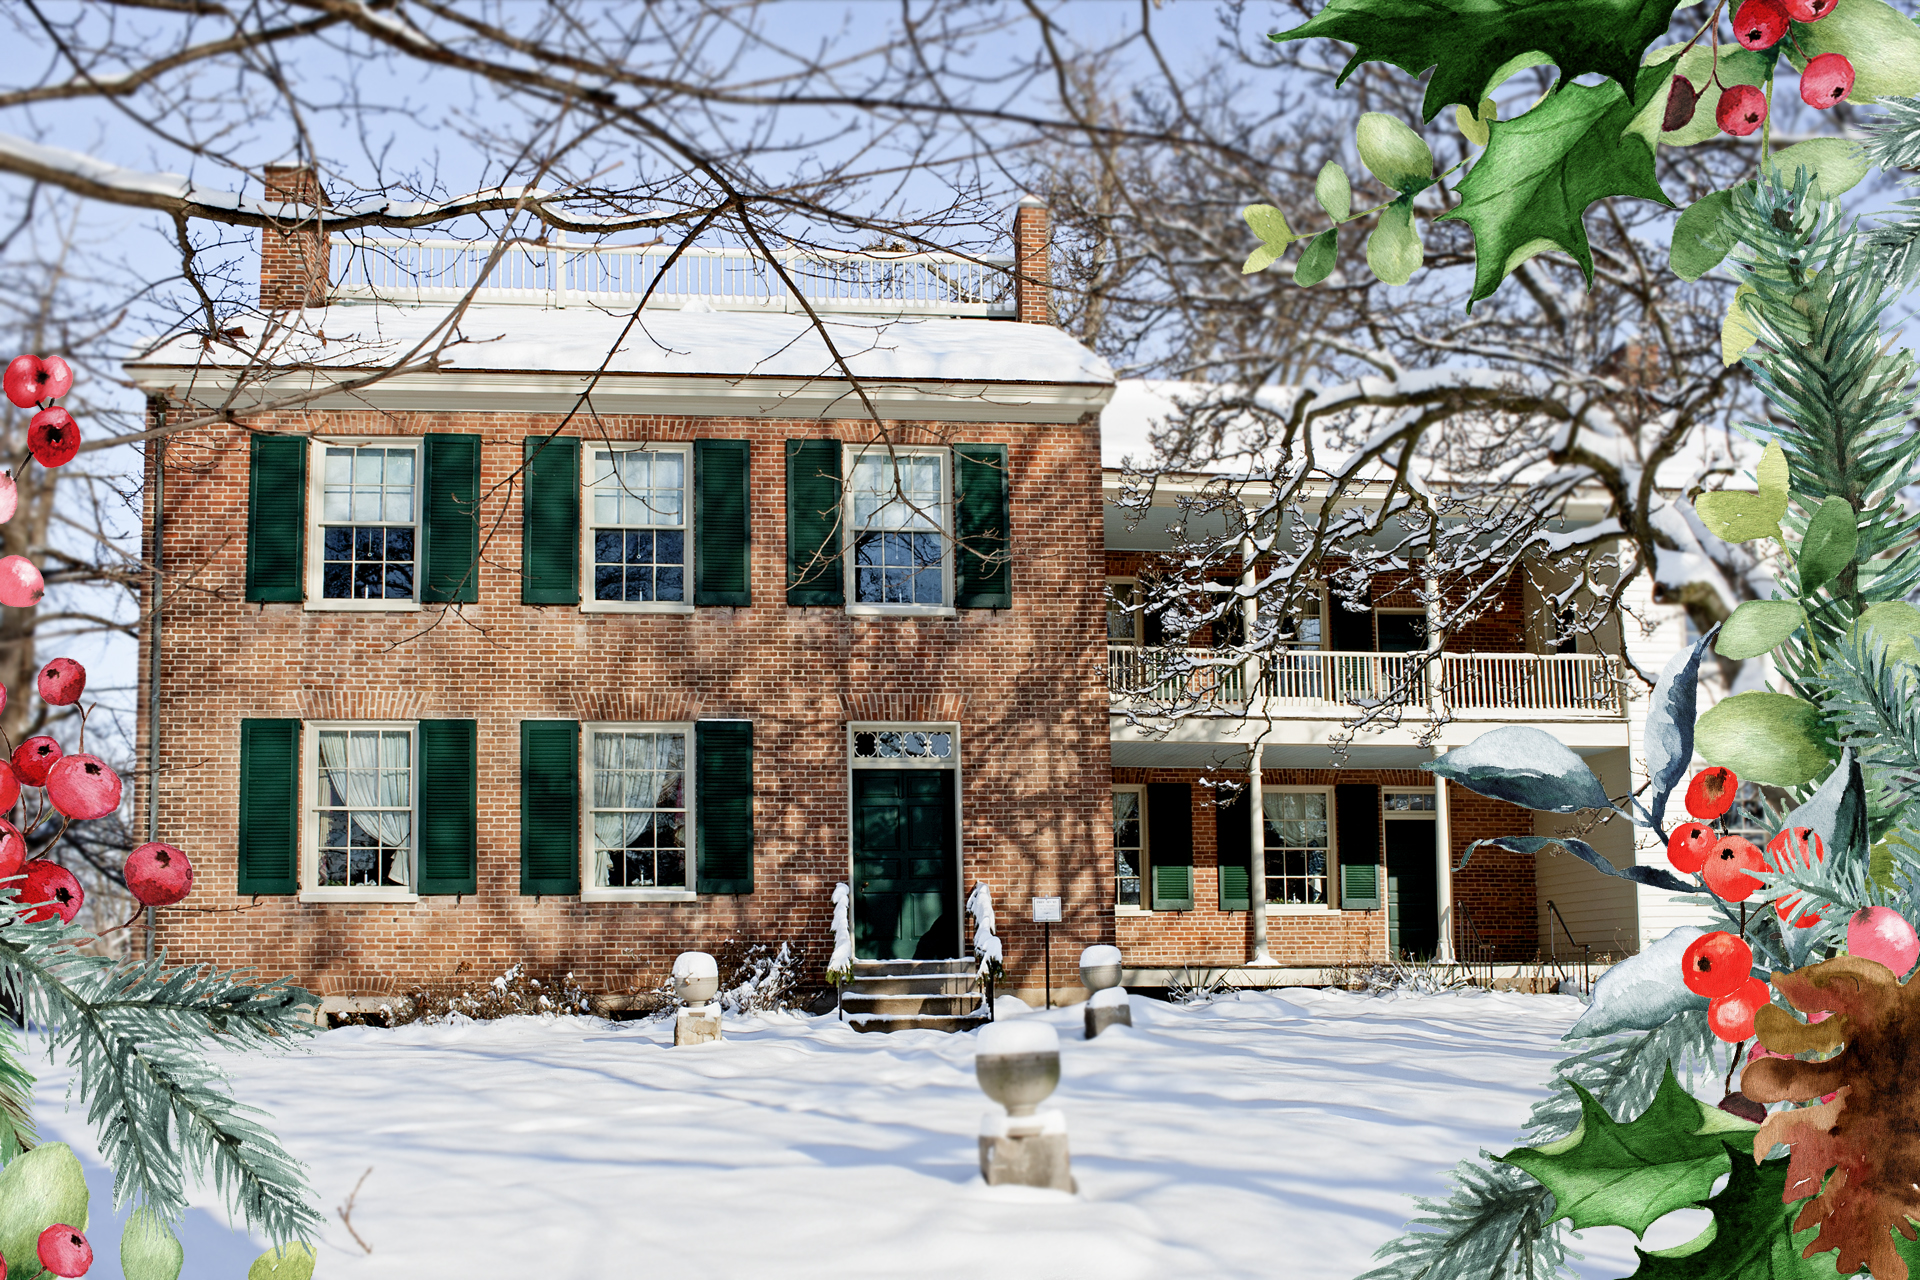 A snowy image of the historic home, The Wylie House